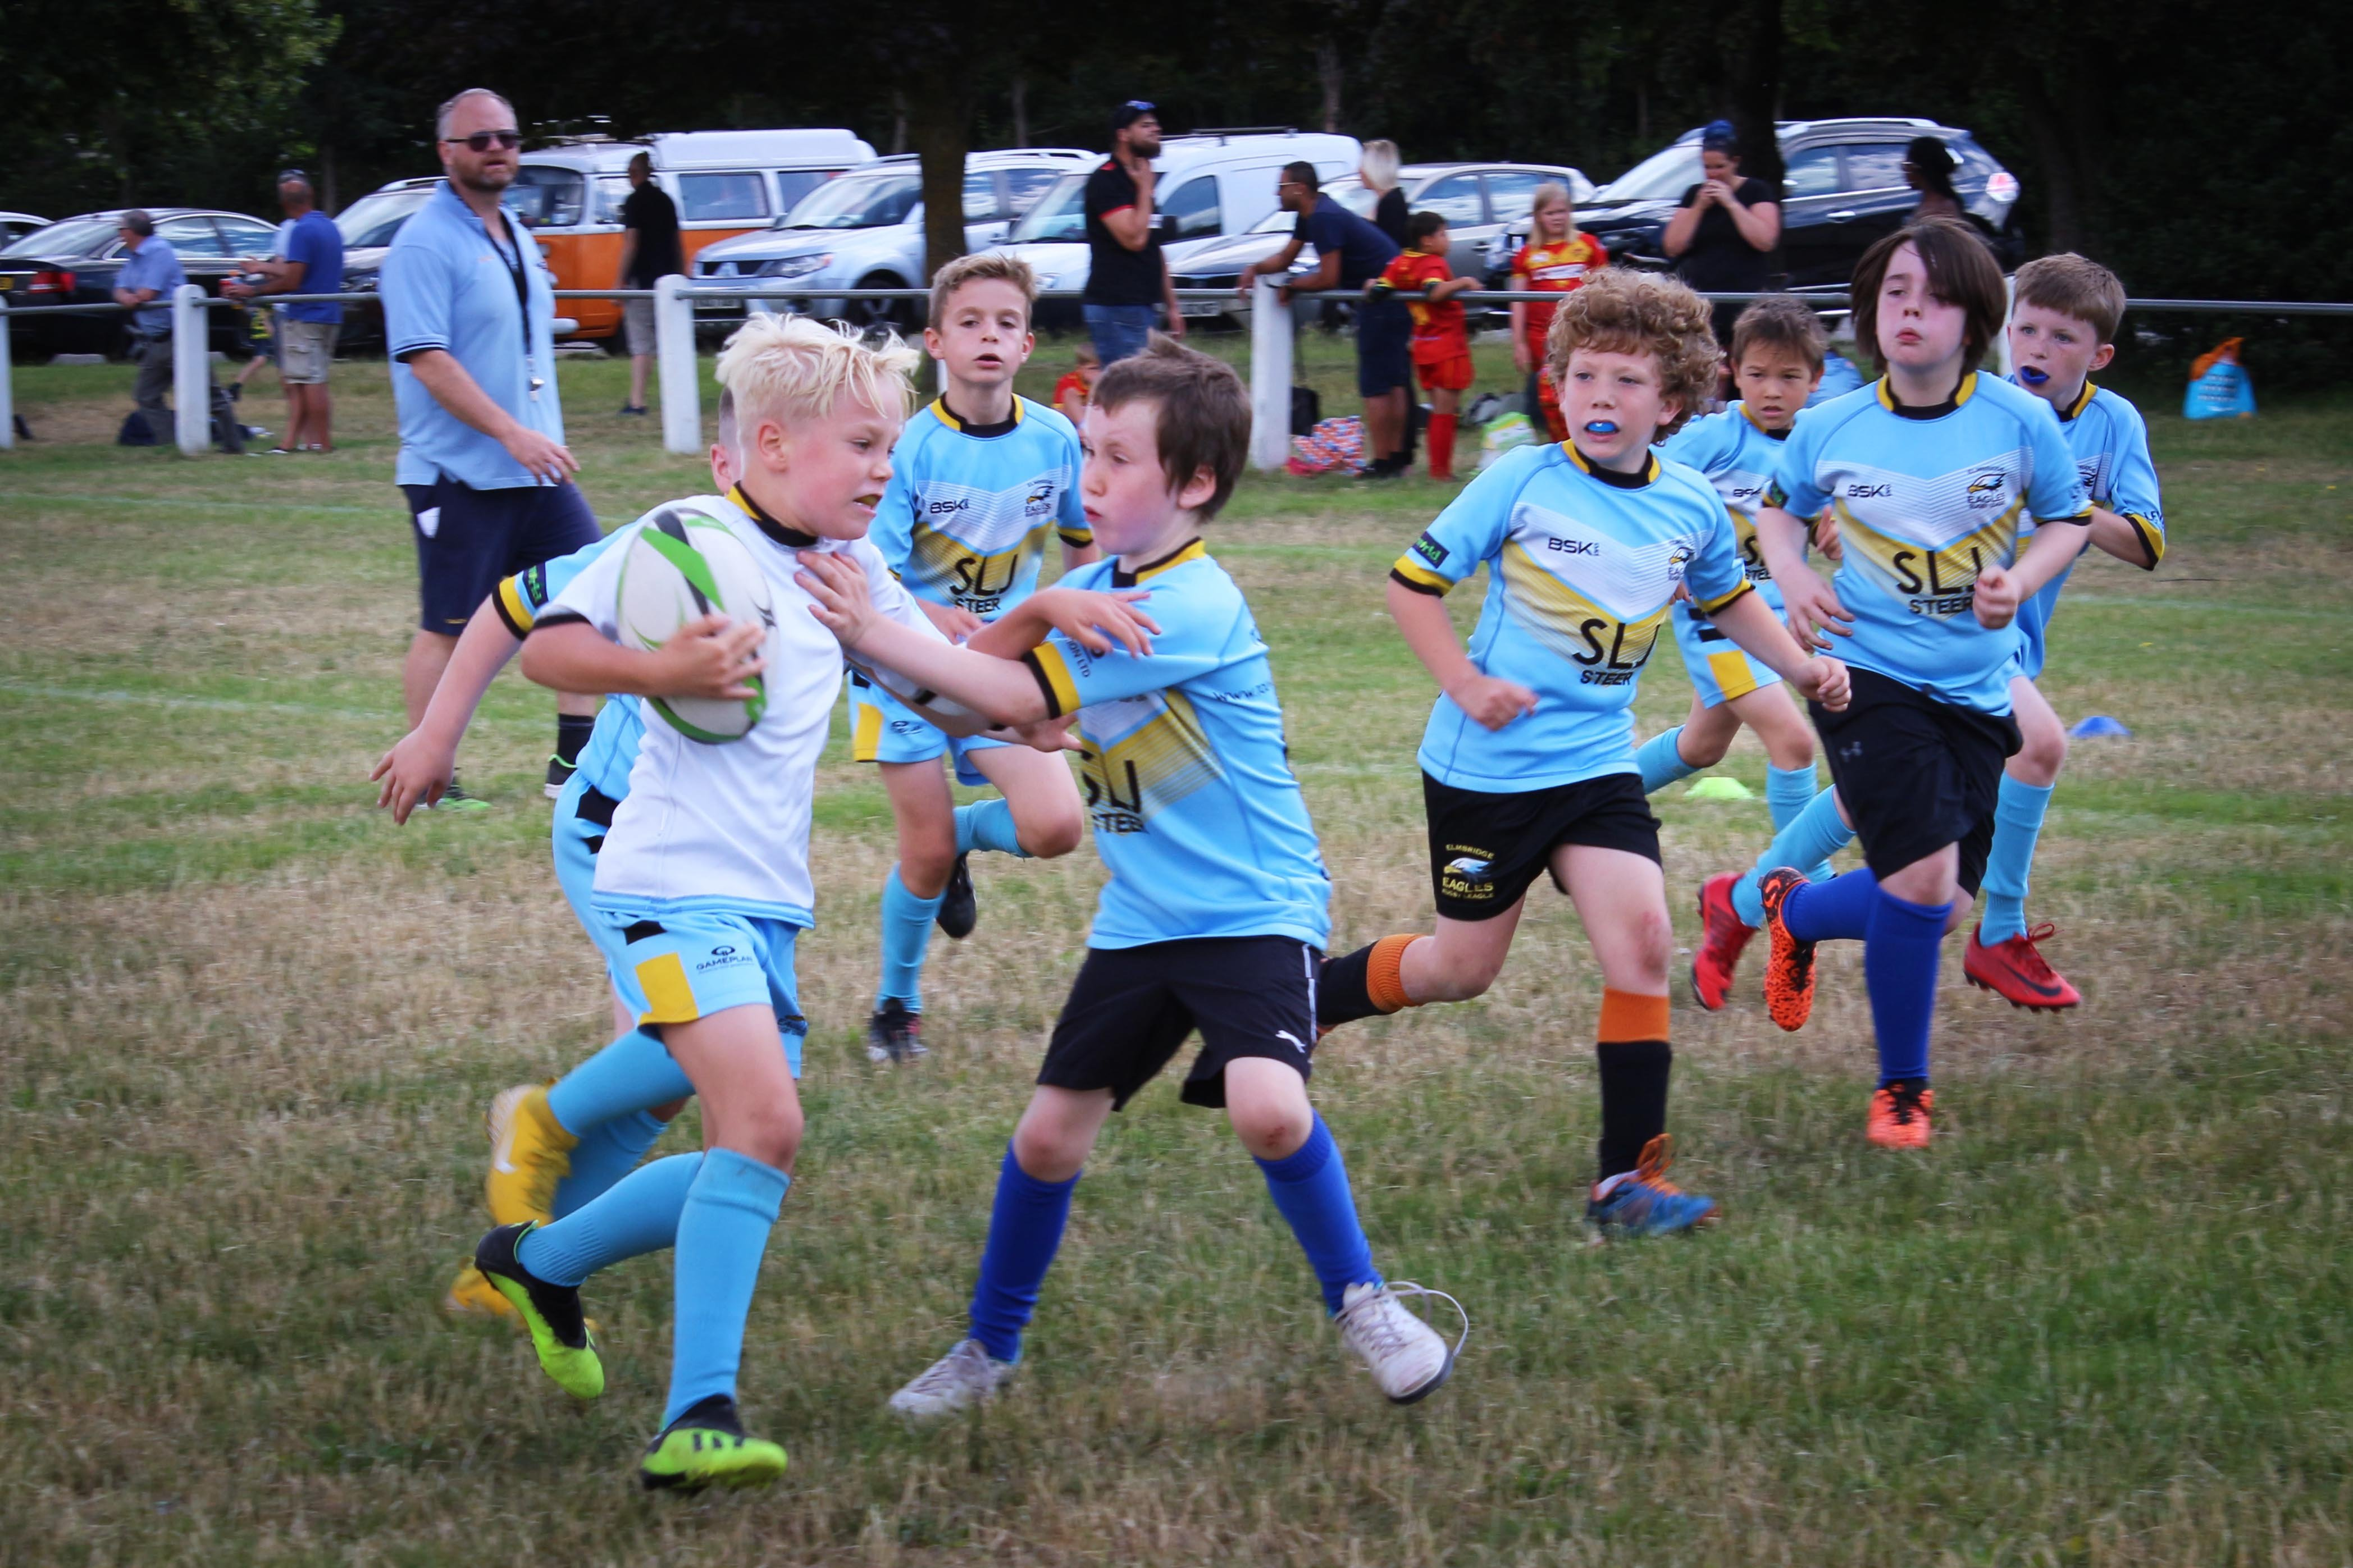 U9s Elmbridge vs Elmbridge 14